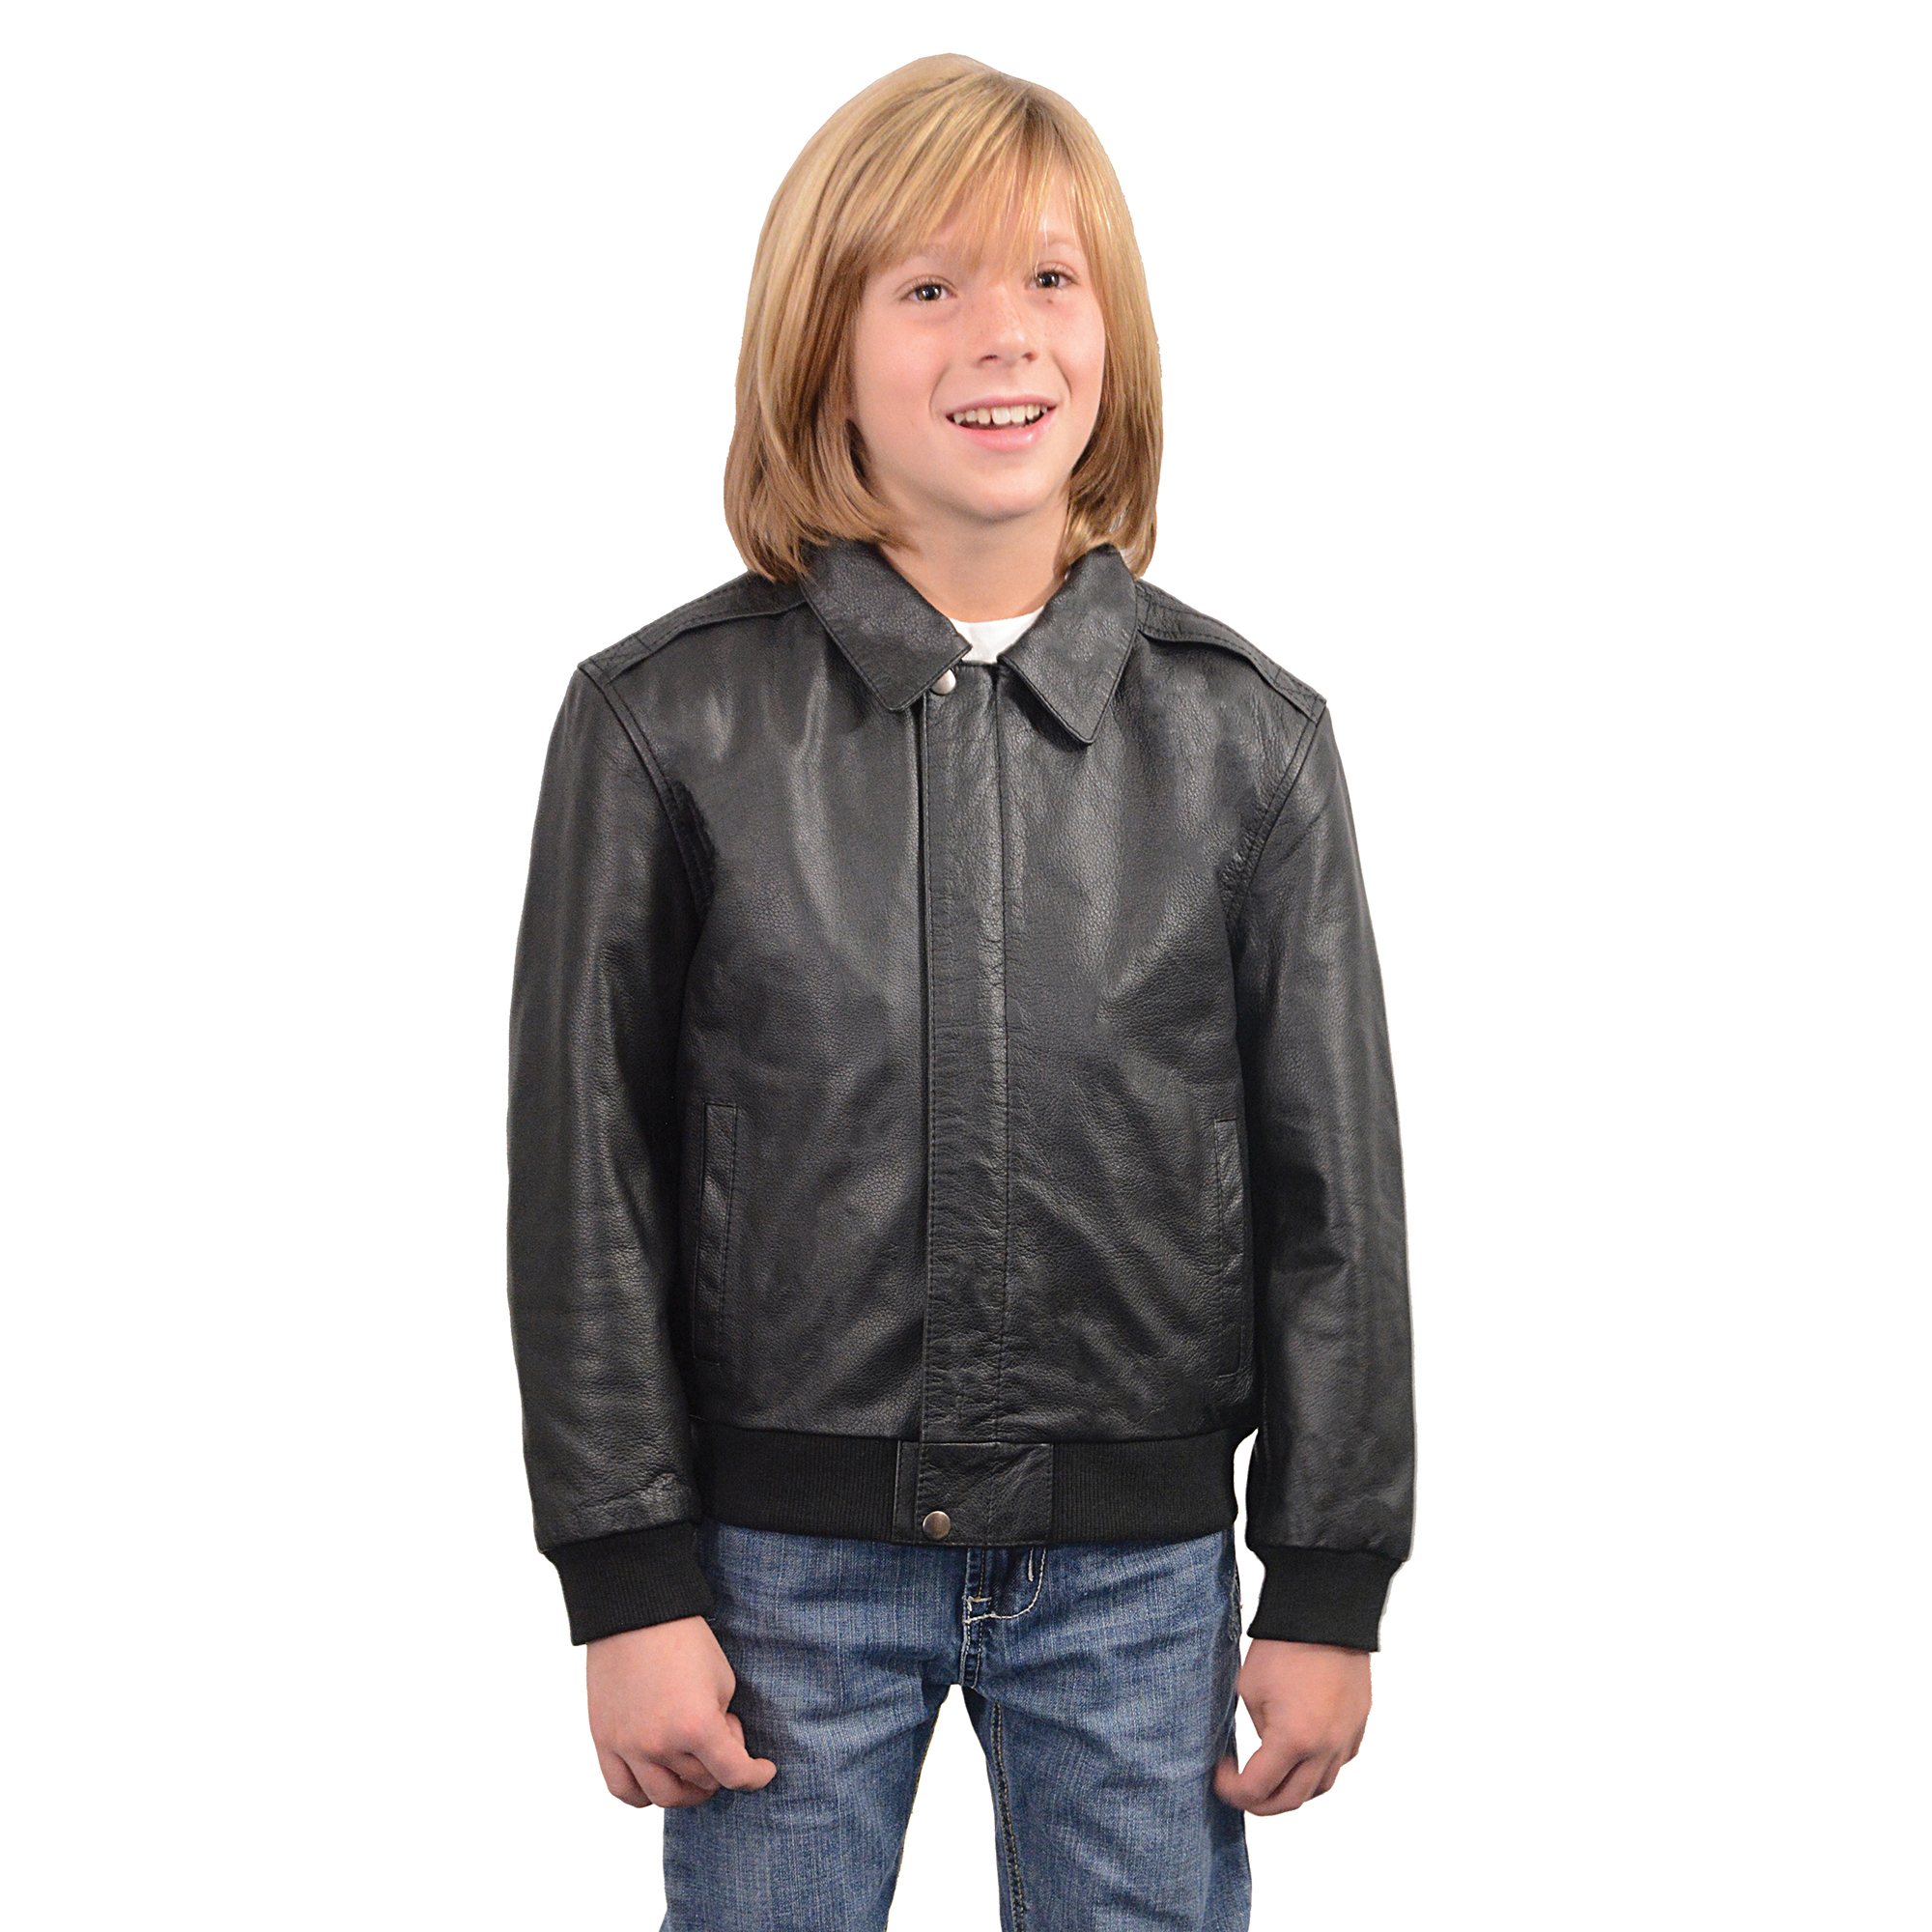 Kid leather jackets